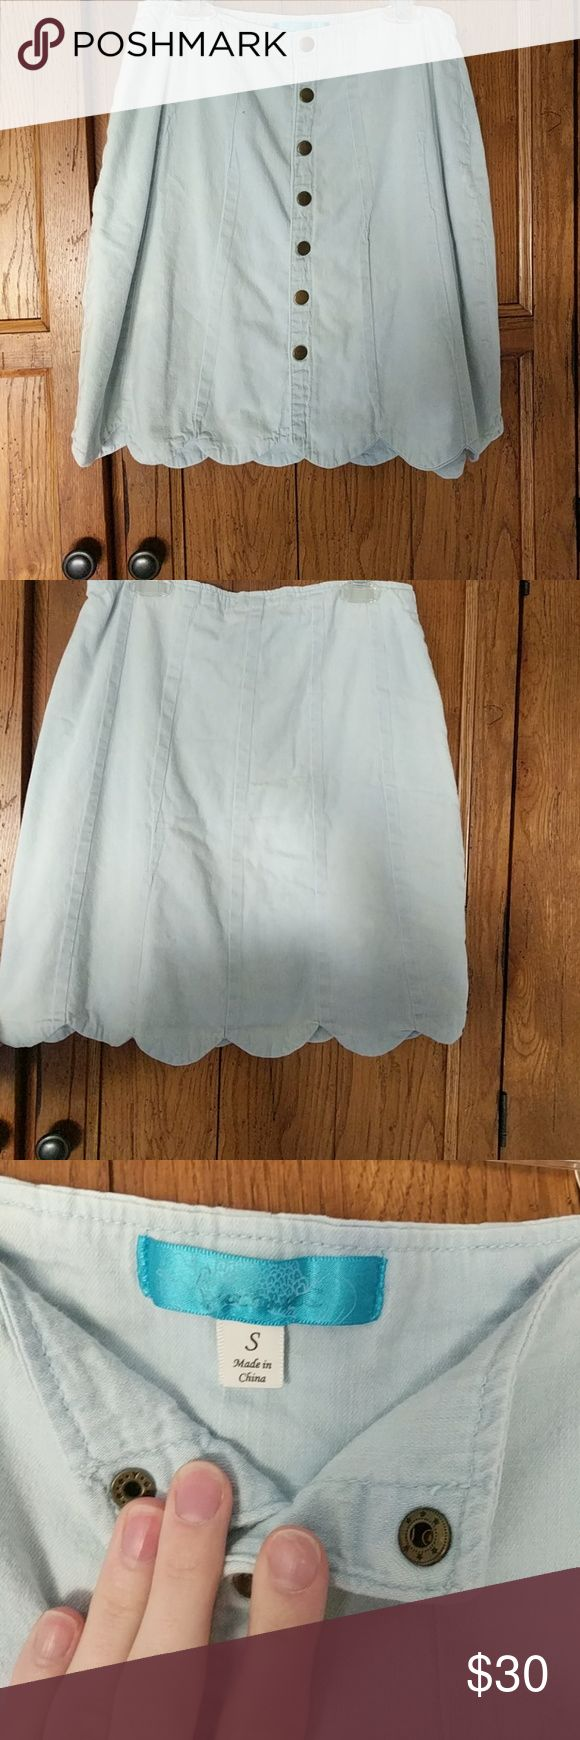 Francesca's skirt High wasted, light denim, buttons all the way down. Worn once. Francesca's Collections Skirts